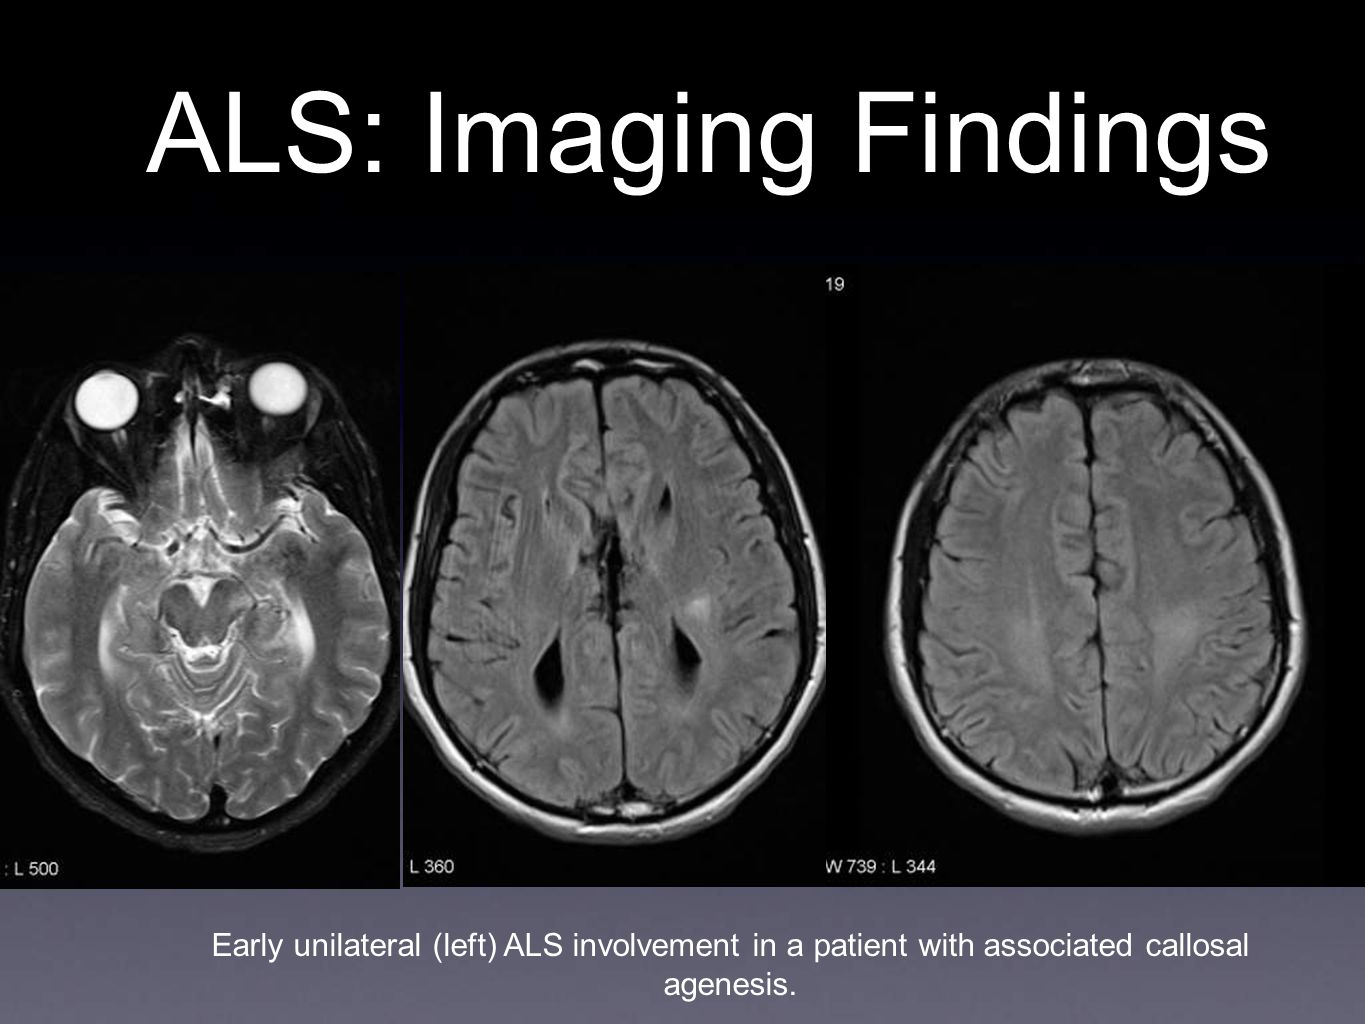 ALS: Imaging Findings Early unilateral (left) ALS involvement in a patient with associated callosal agenesis.